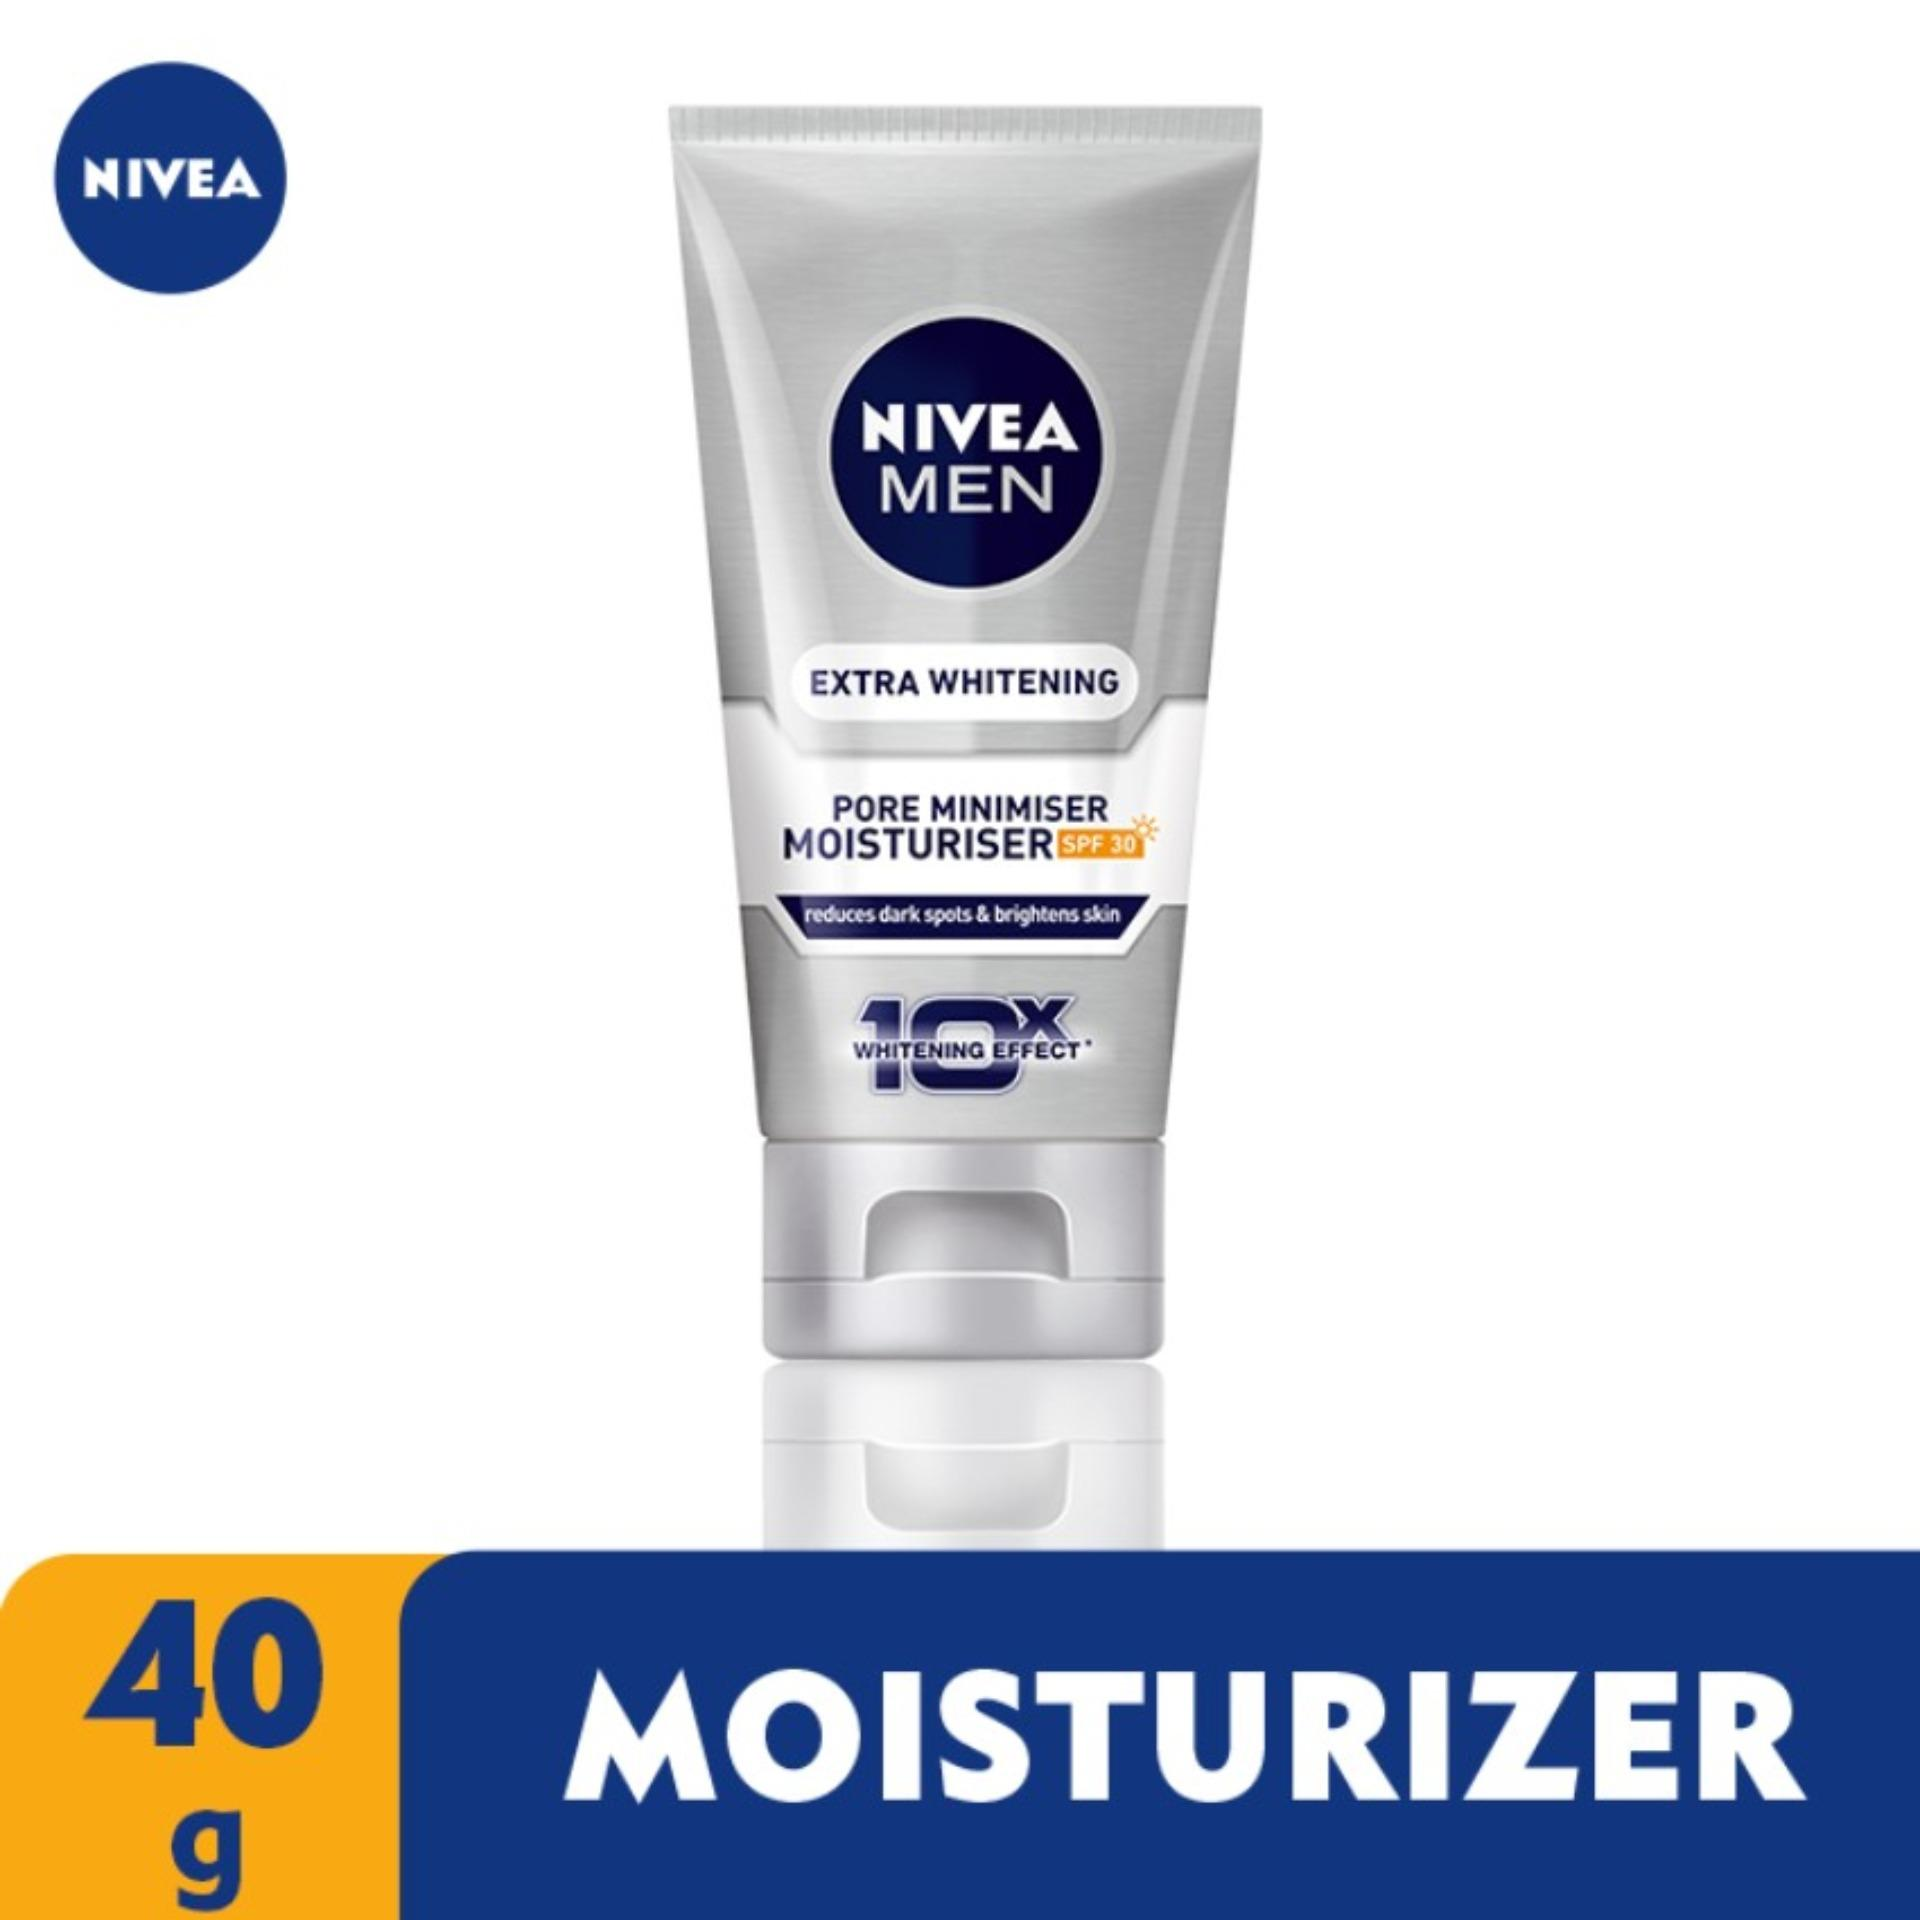 Nivea For Men Extra Whitening Pore Minimiser Moisturiser Spf30 40ml By Lazada Retail Nivea.